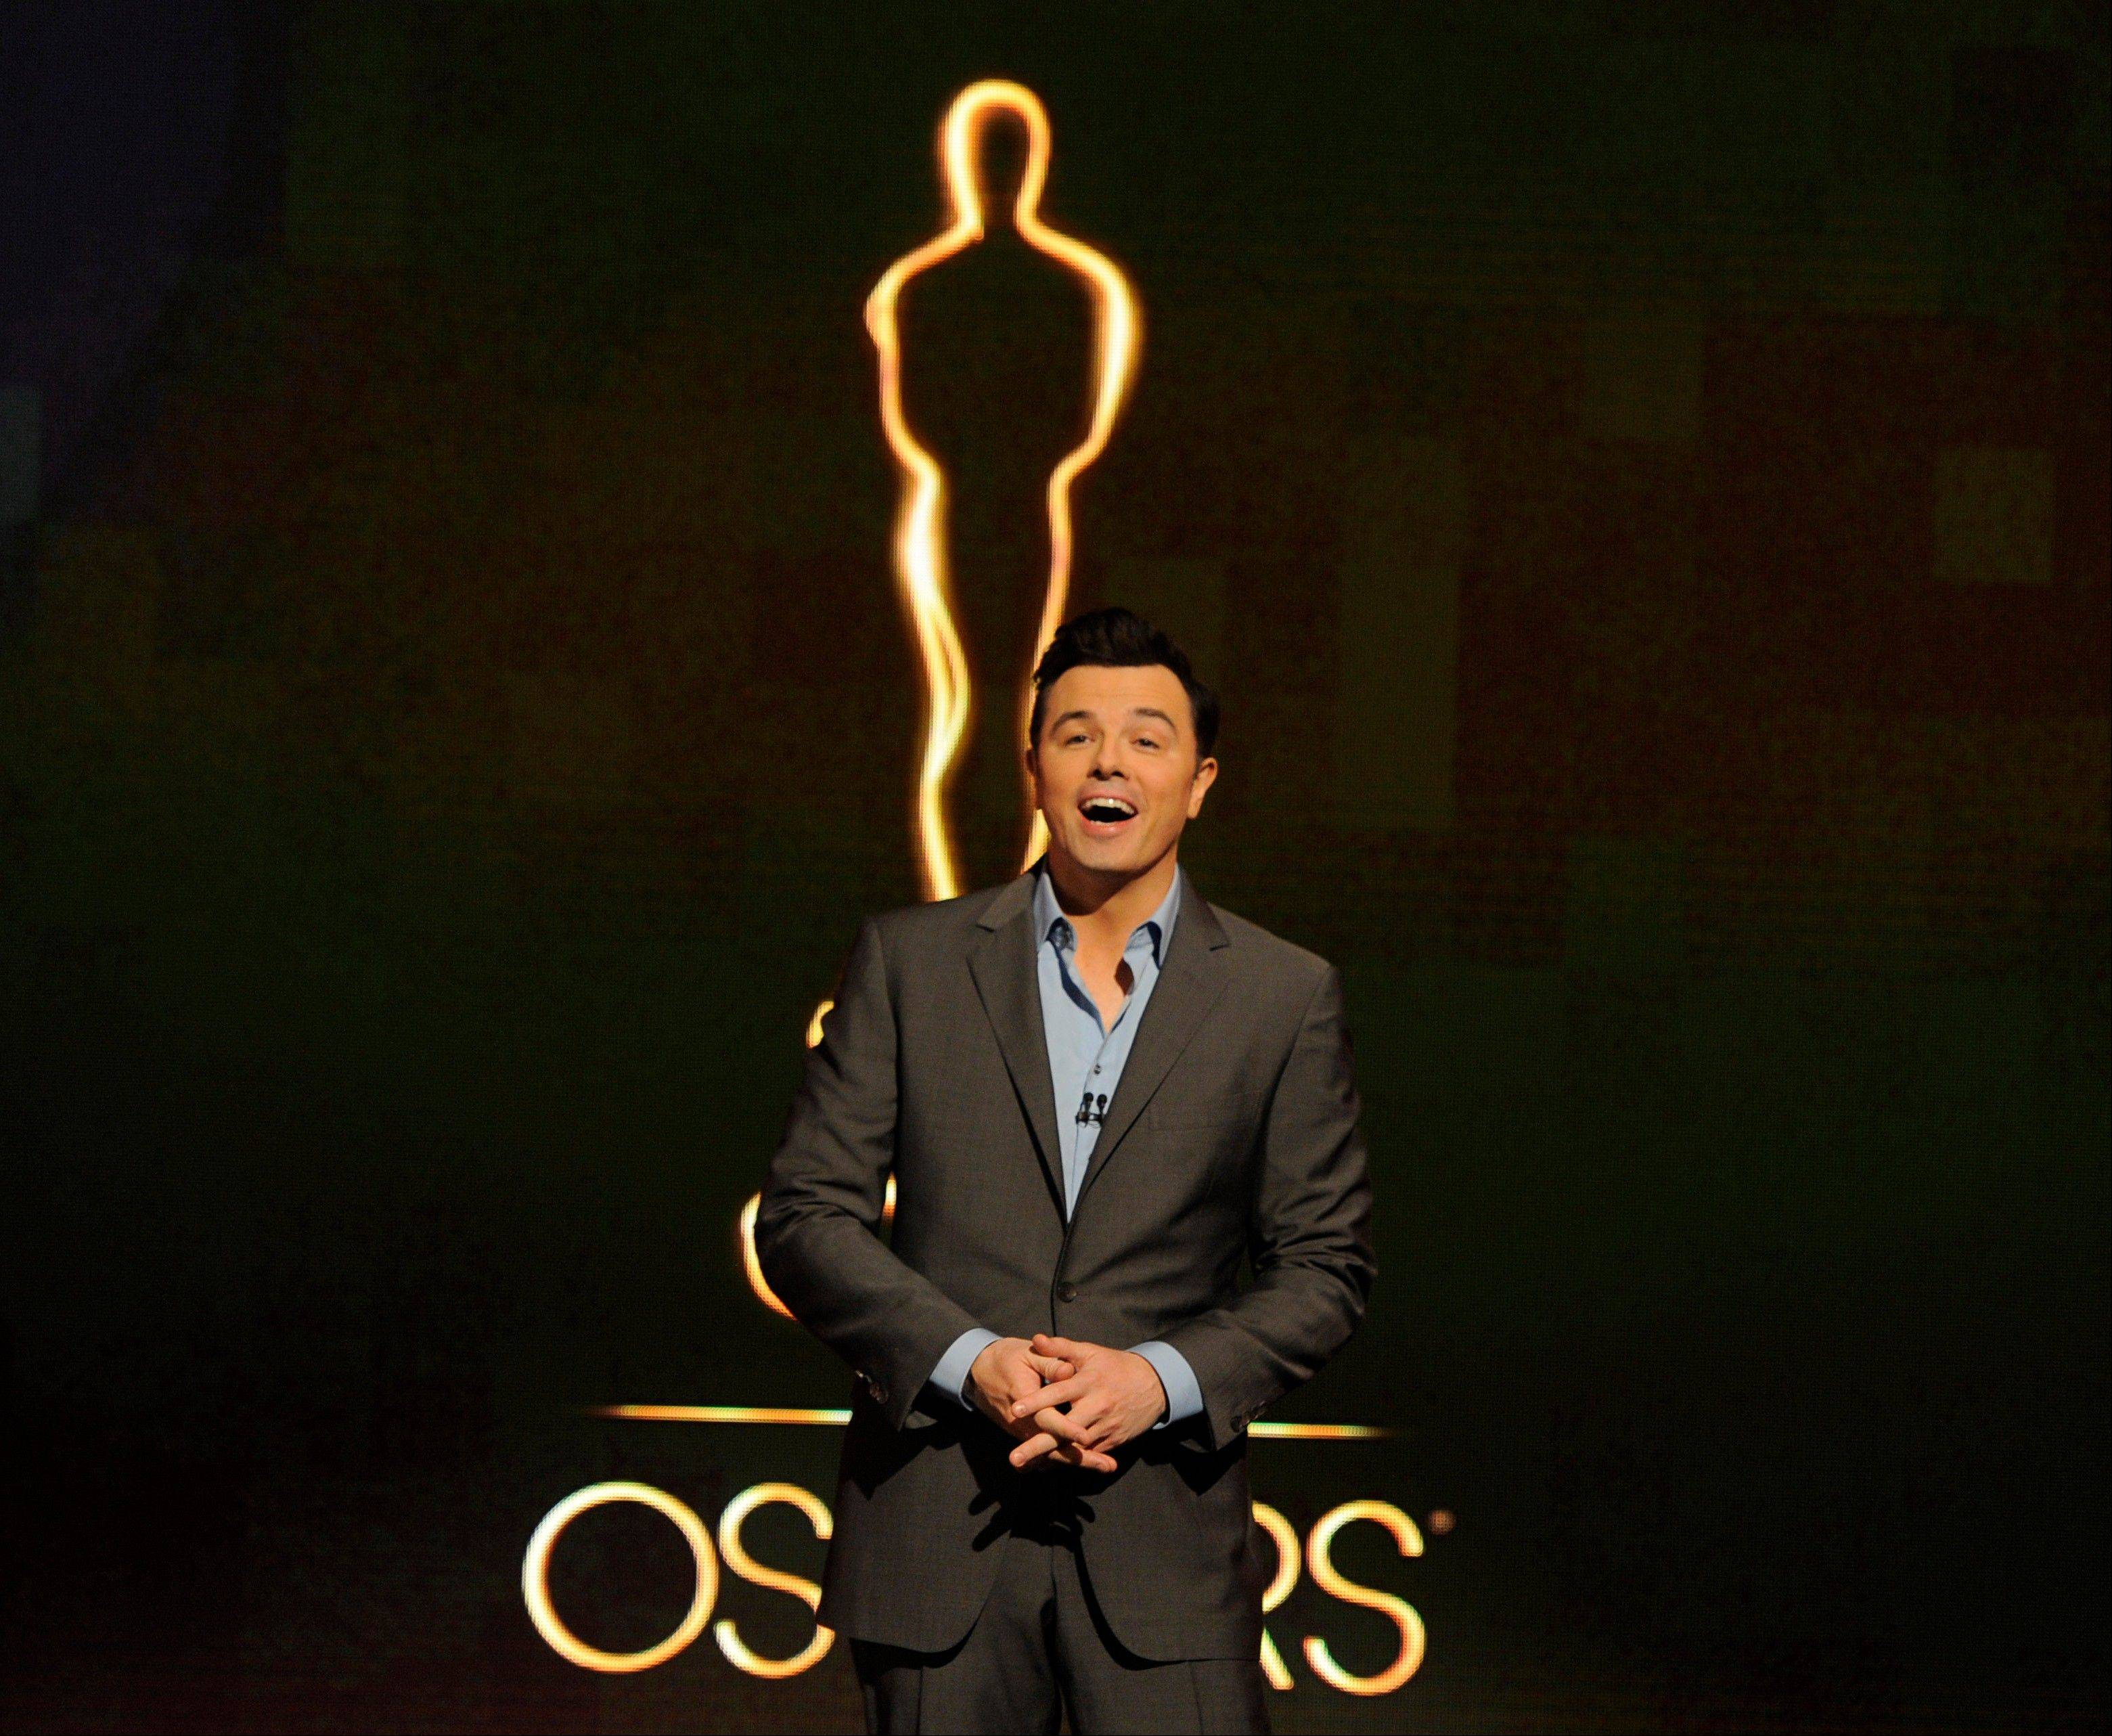 Seth MacFarlane has been preparing for his role as host of the upcoming 85th Academy Awards in Beverly Hills.